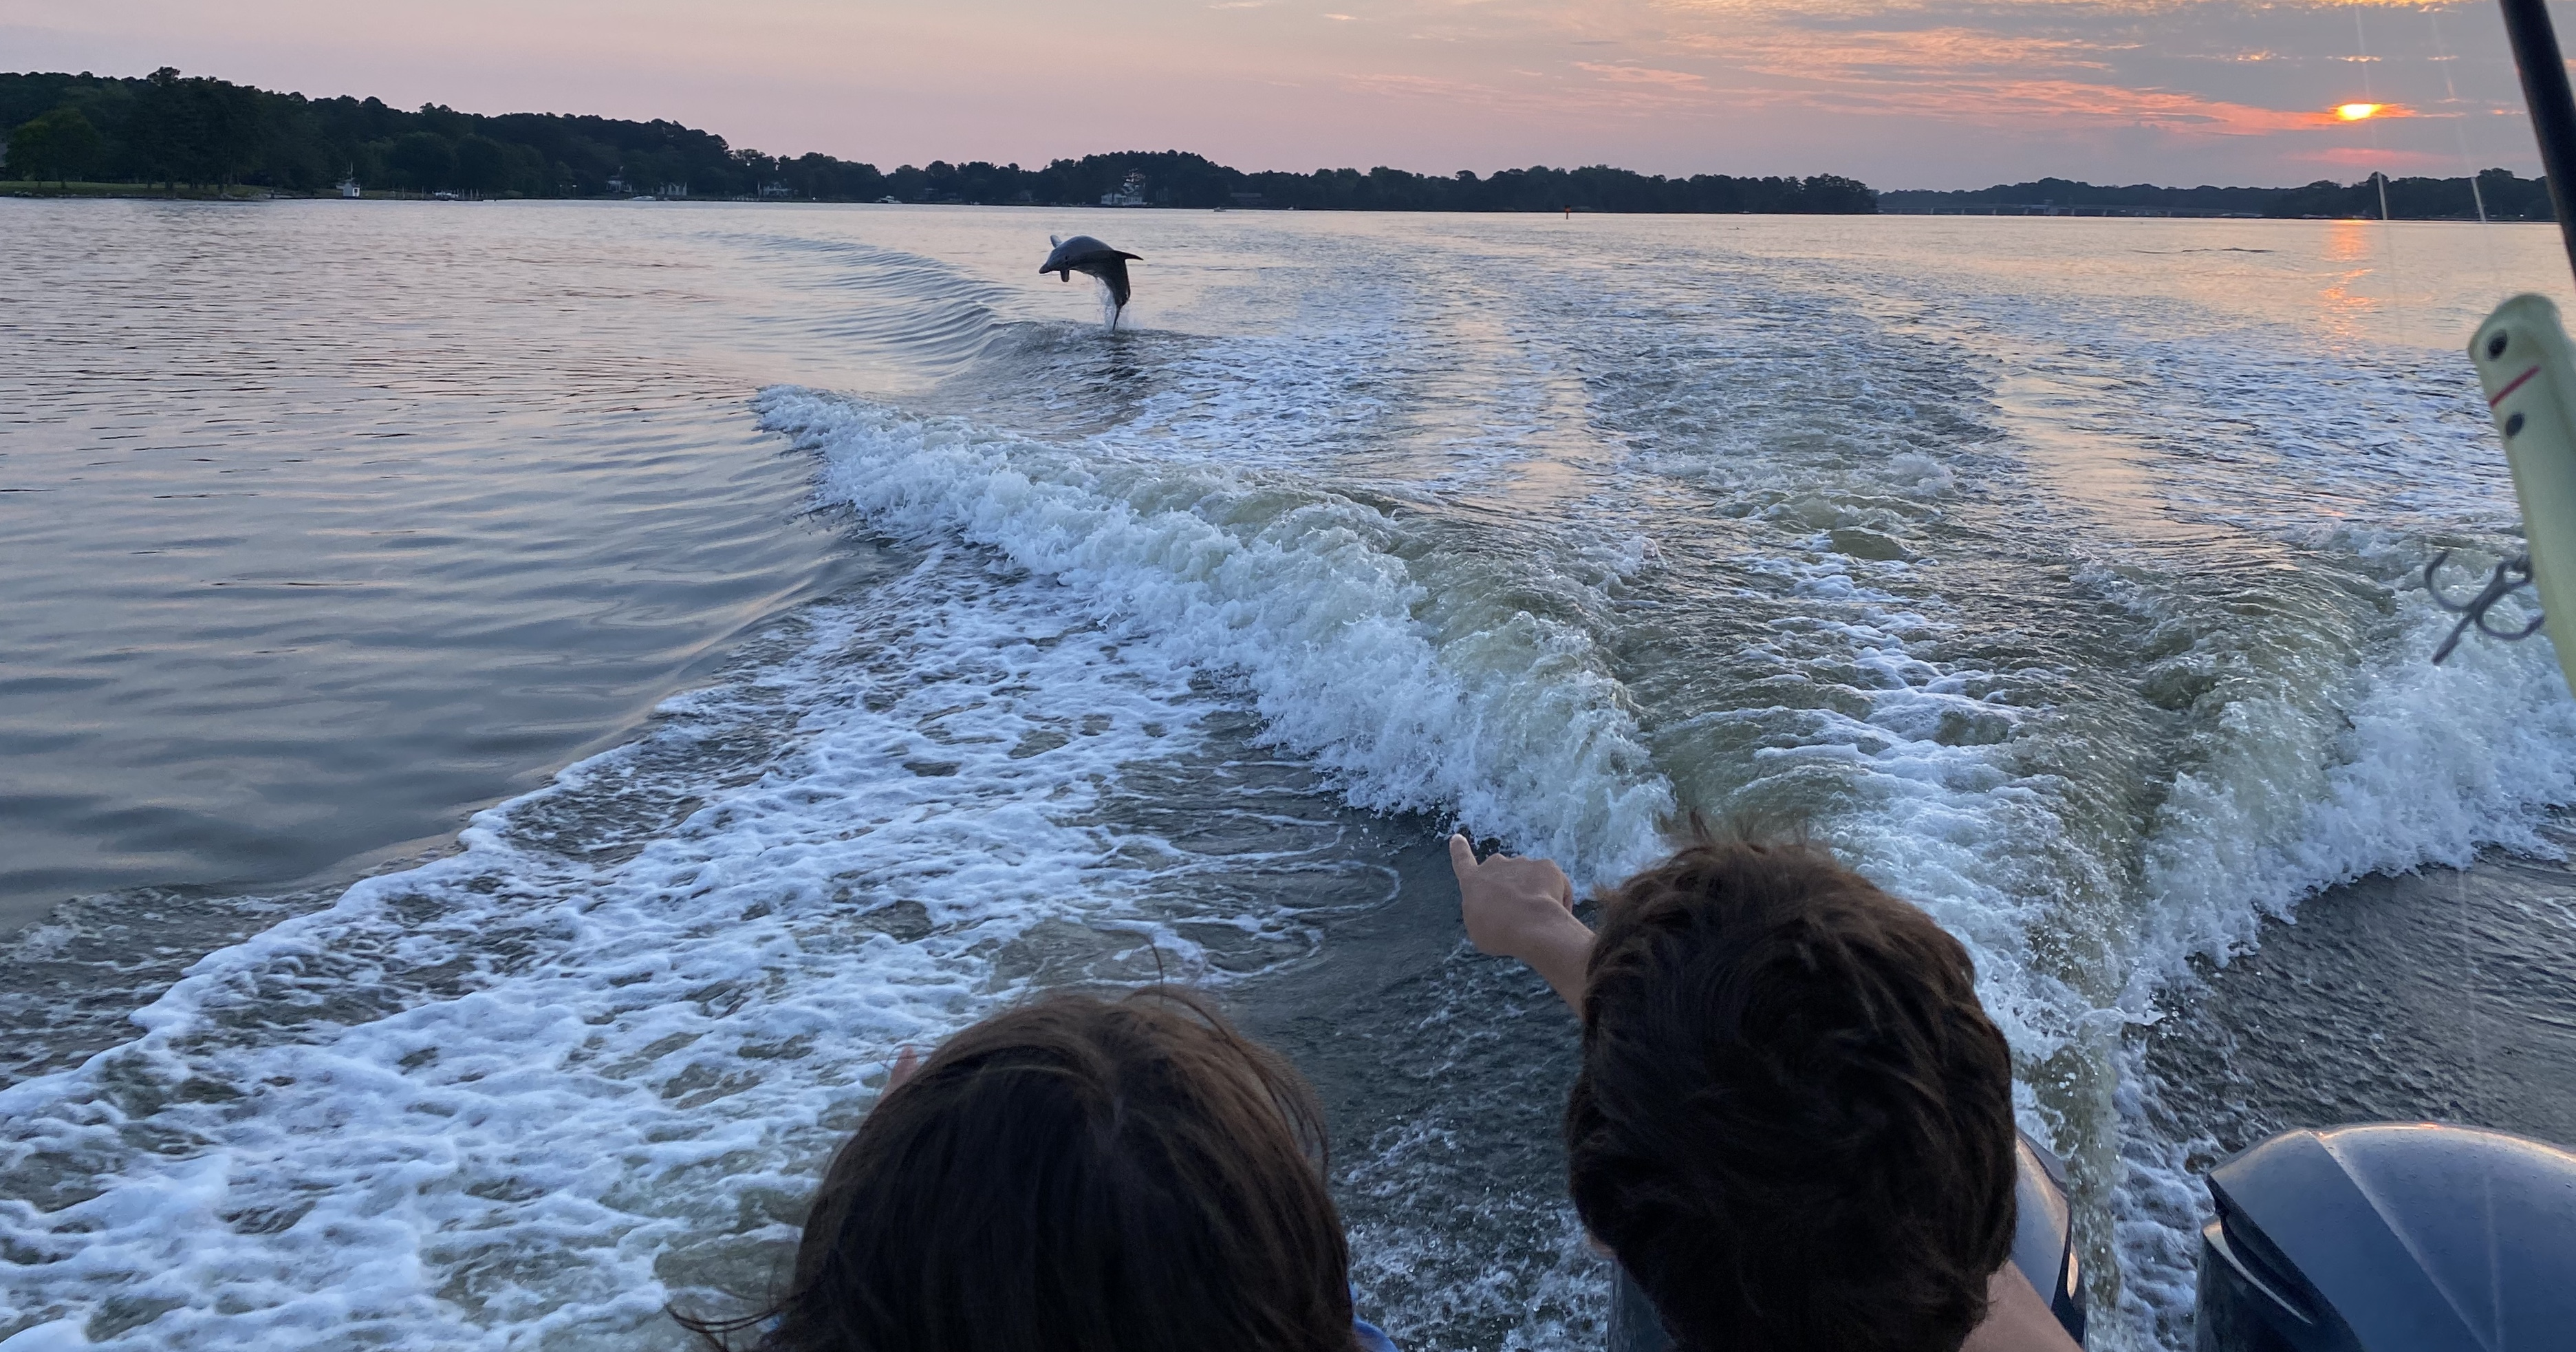 Citizens on the Chesapeake Bay Watching Dolphins